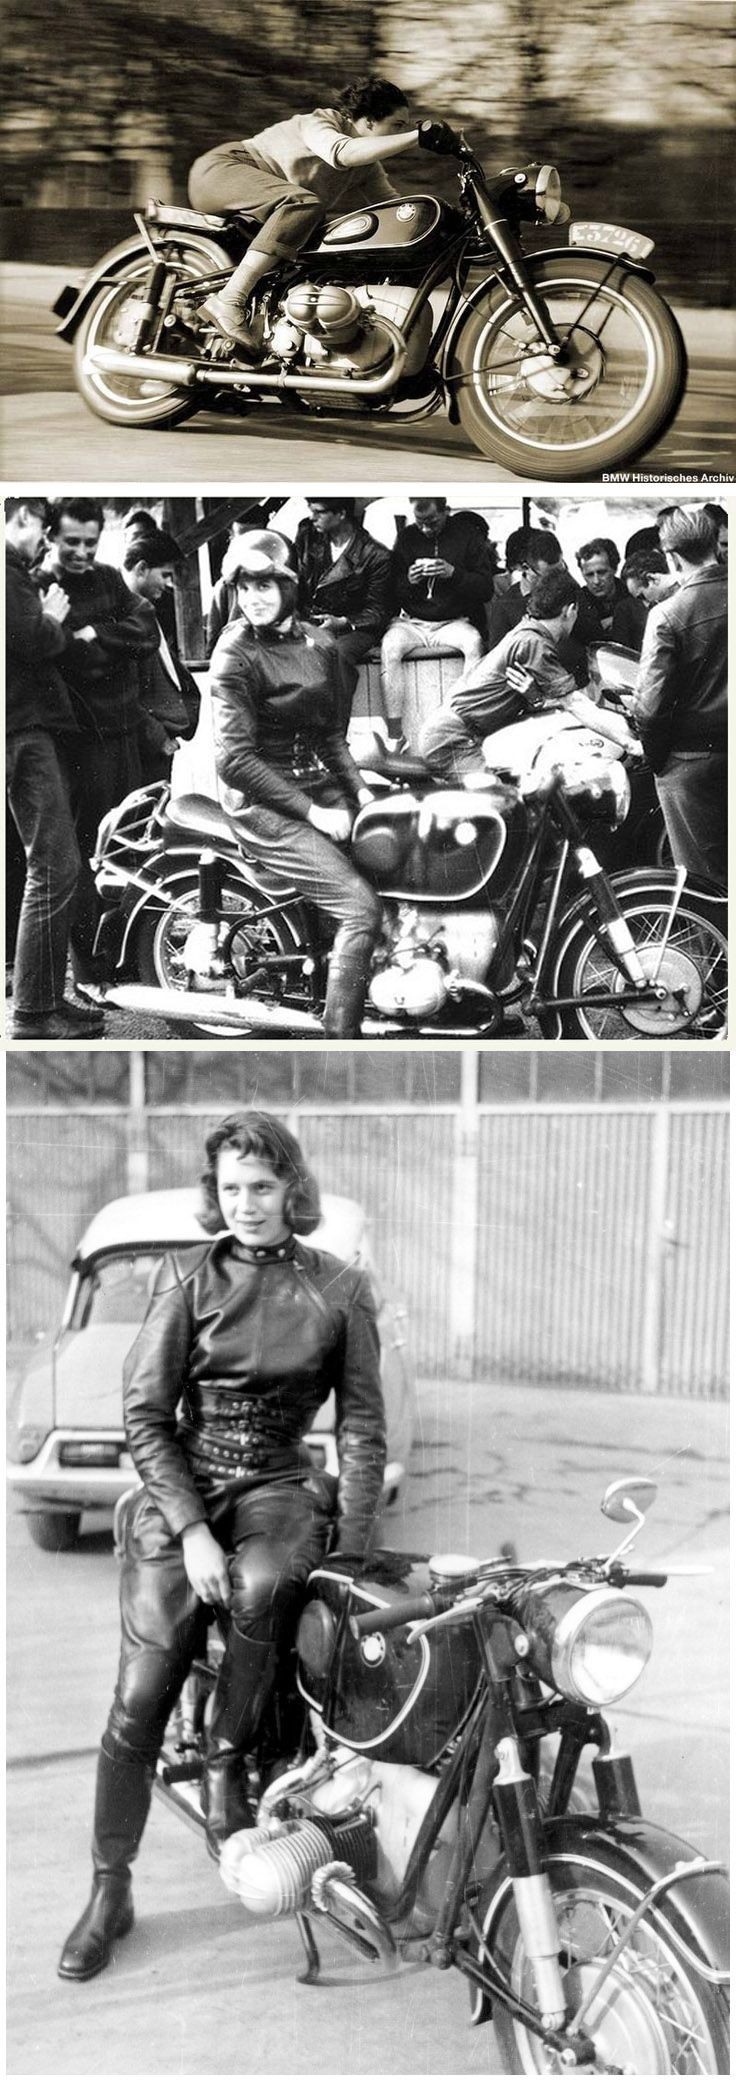 "Marianne Weber, a Journalist from Belgium, tested the R68 for the French magazine ""MOTORCYCLE"" (issue 81/August 18, 1952) and achieved a top speed of more than 160 km/h and gave the proof that the R68 was a real 100-mph racing-bike. The photos were made by ""R.G. Everts"" in April 1952. Marianne Weber later achieved 162.895 km/h (101.24 mph) in 1954"